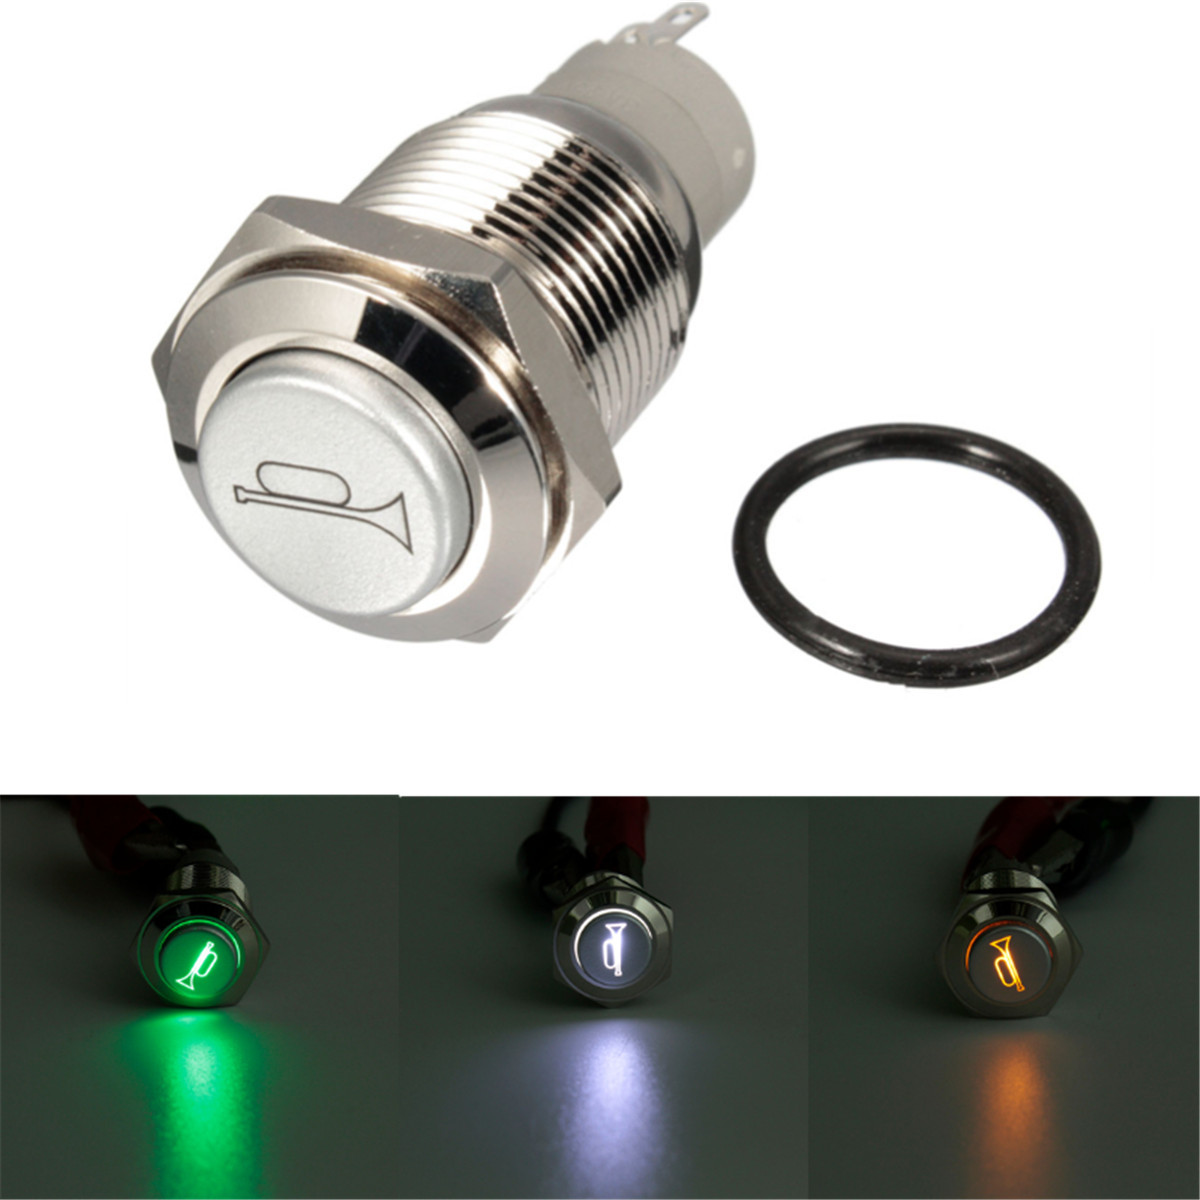 12V 16mm LED Push Button Switch Horn Switch Momentary Blue LED Light Waterproof